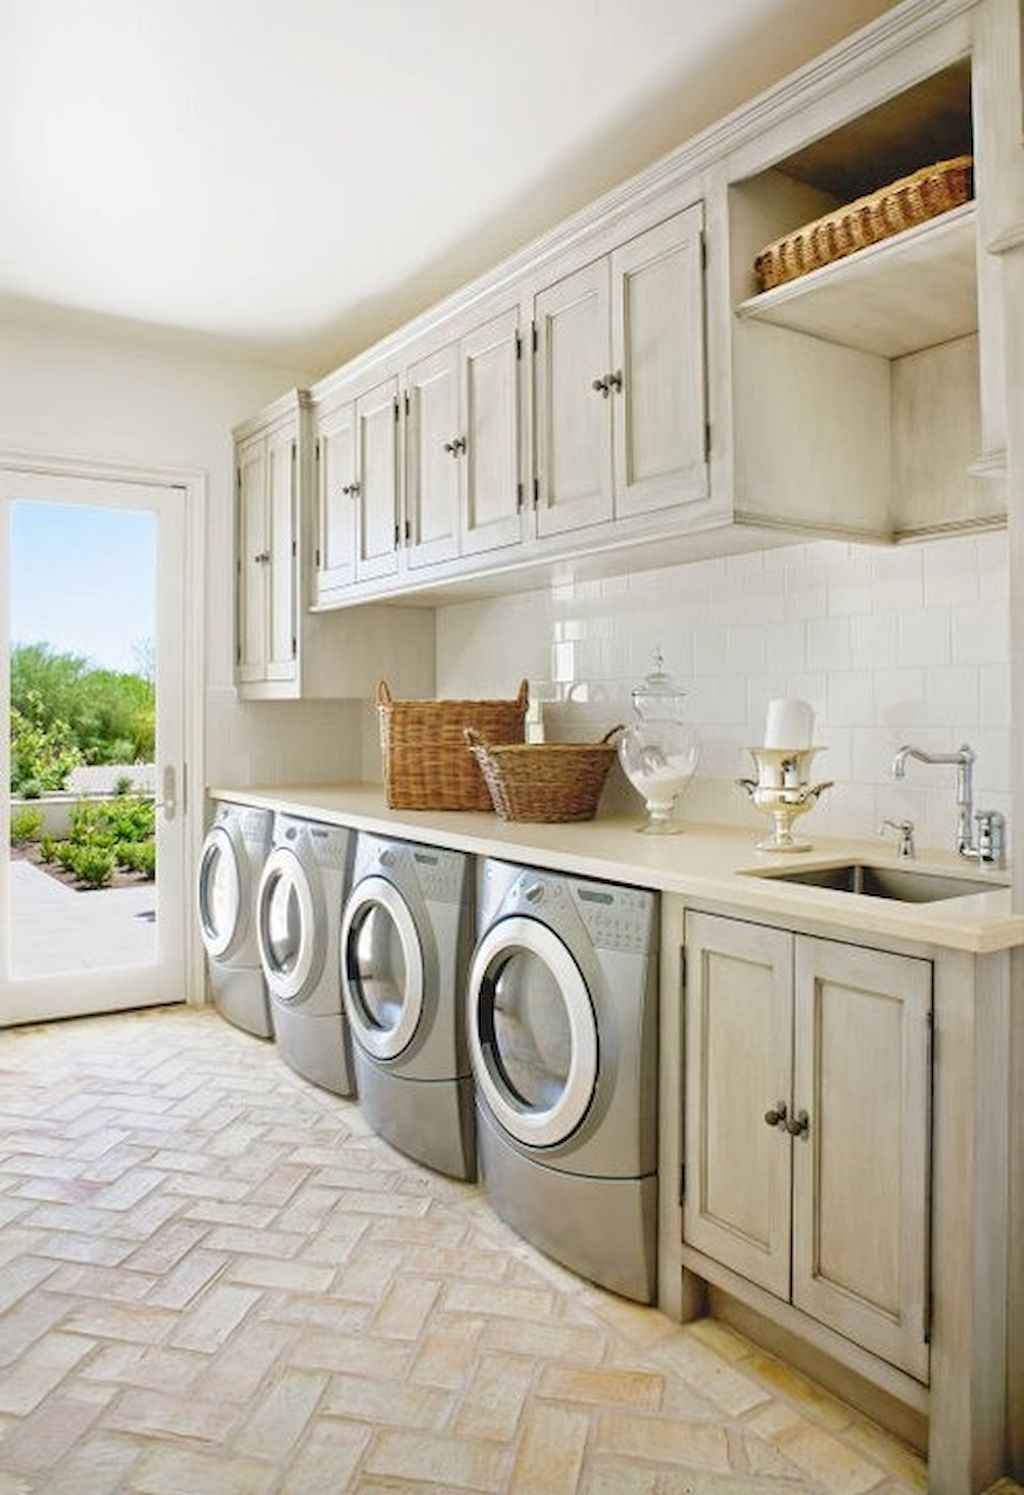 45 Rustic Farmhouse Laundry Room Design Ideas and Makeover (35)